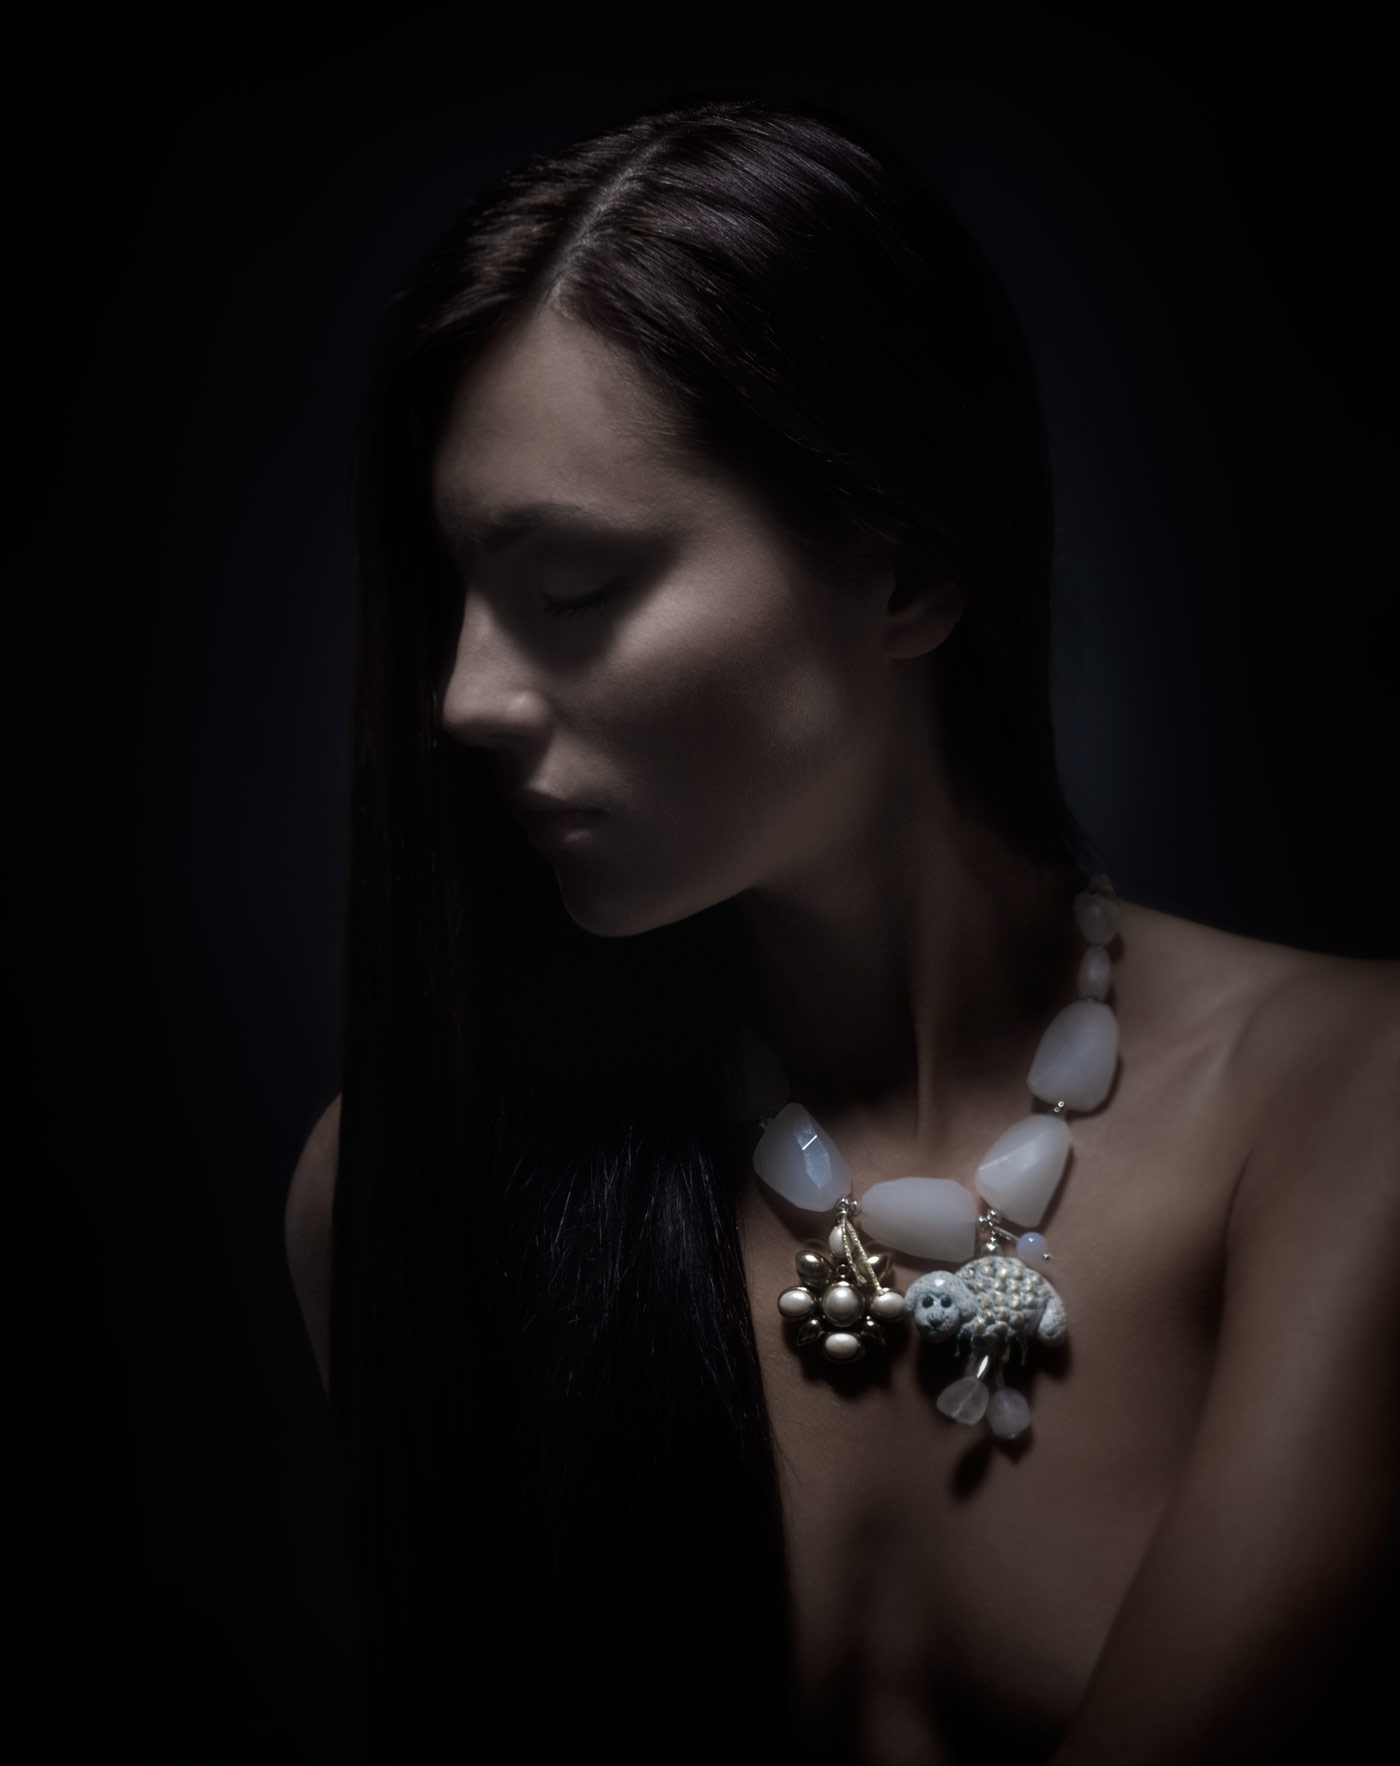 Rasa_Juskeviciene_Jewellery_4